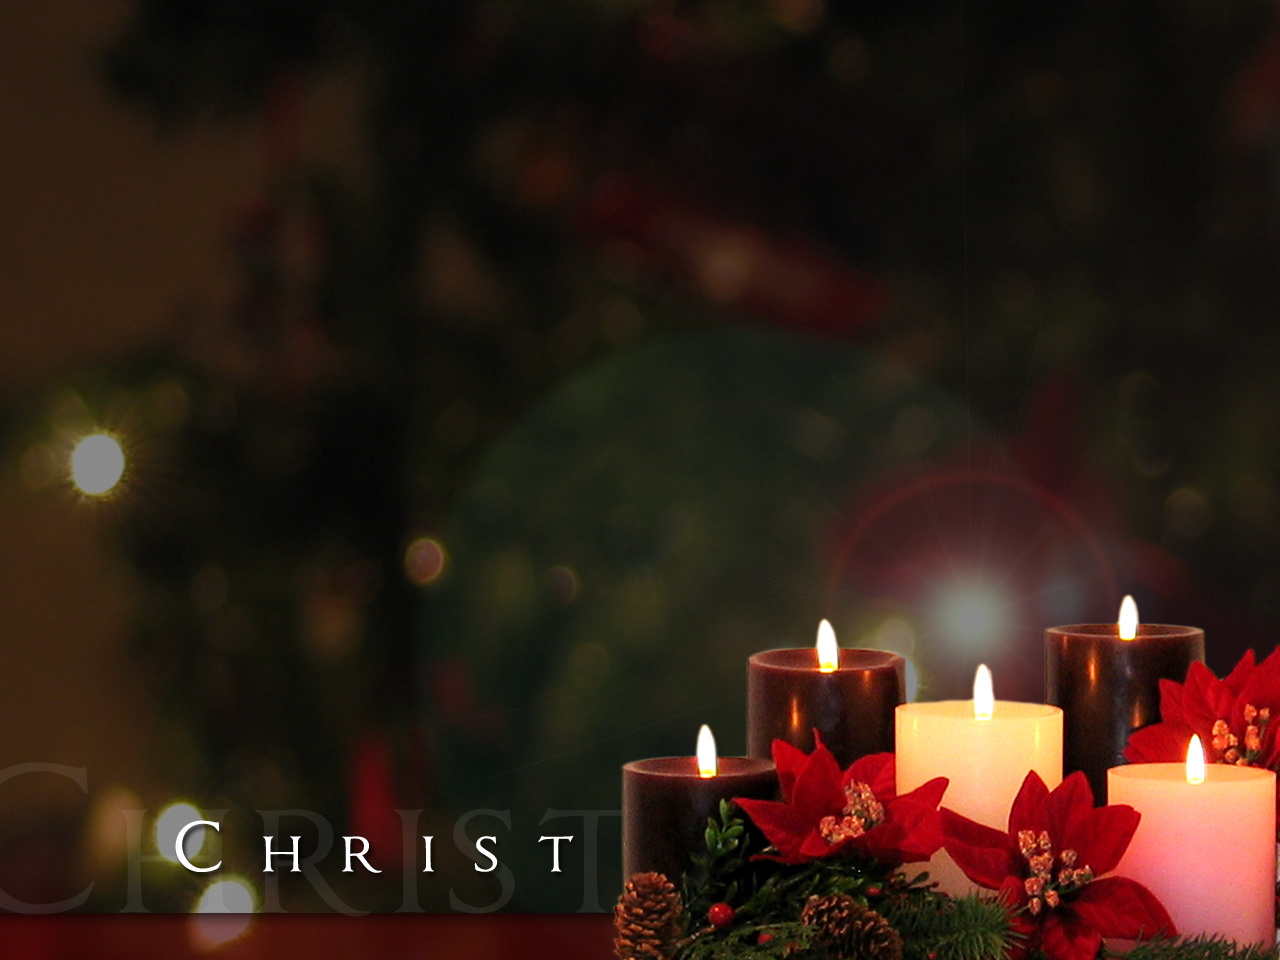 Christmas Candle Wallpapers - WallpaperSafari